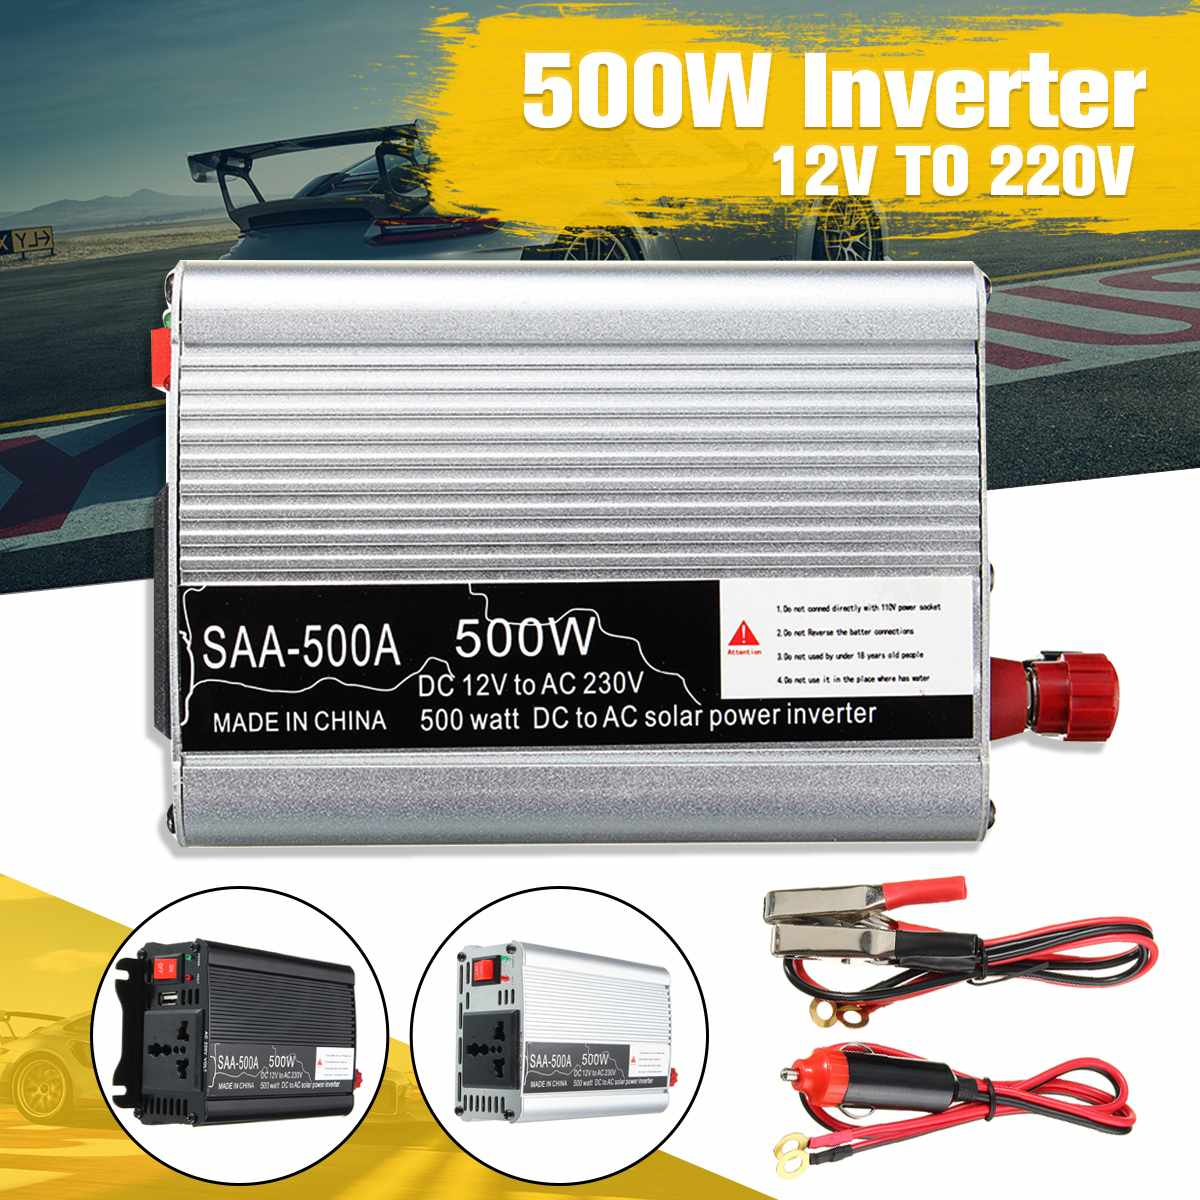 Portable <font><b>500W</b></font> DC 12V to AC 220V USB Car Power <font><b>Inverter</b></font> Charger Converter Adapter DC 12 to AC 220 Modified Sine Wave Transformer image